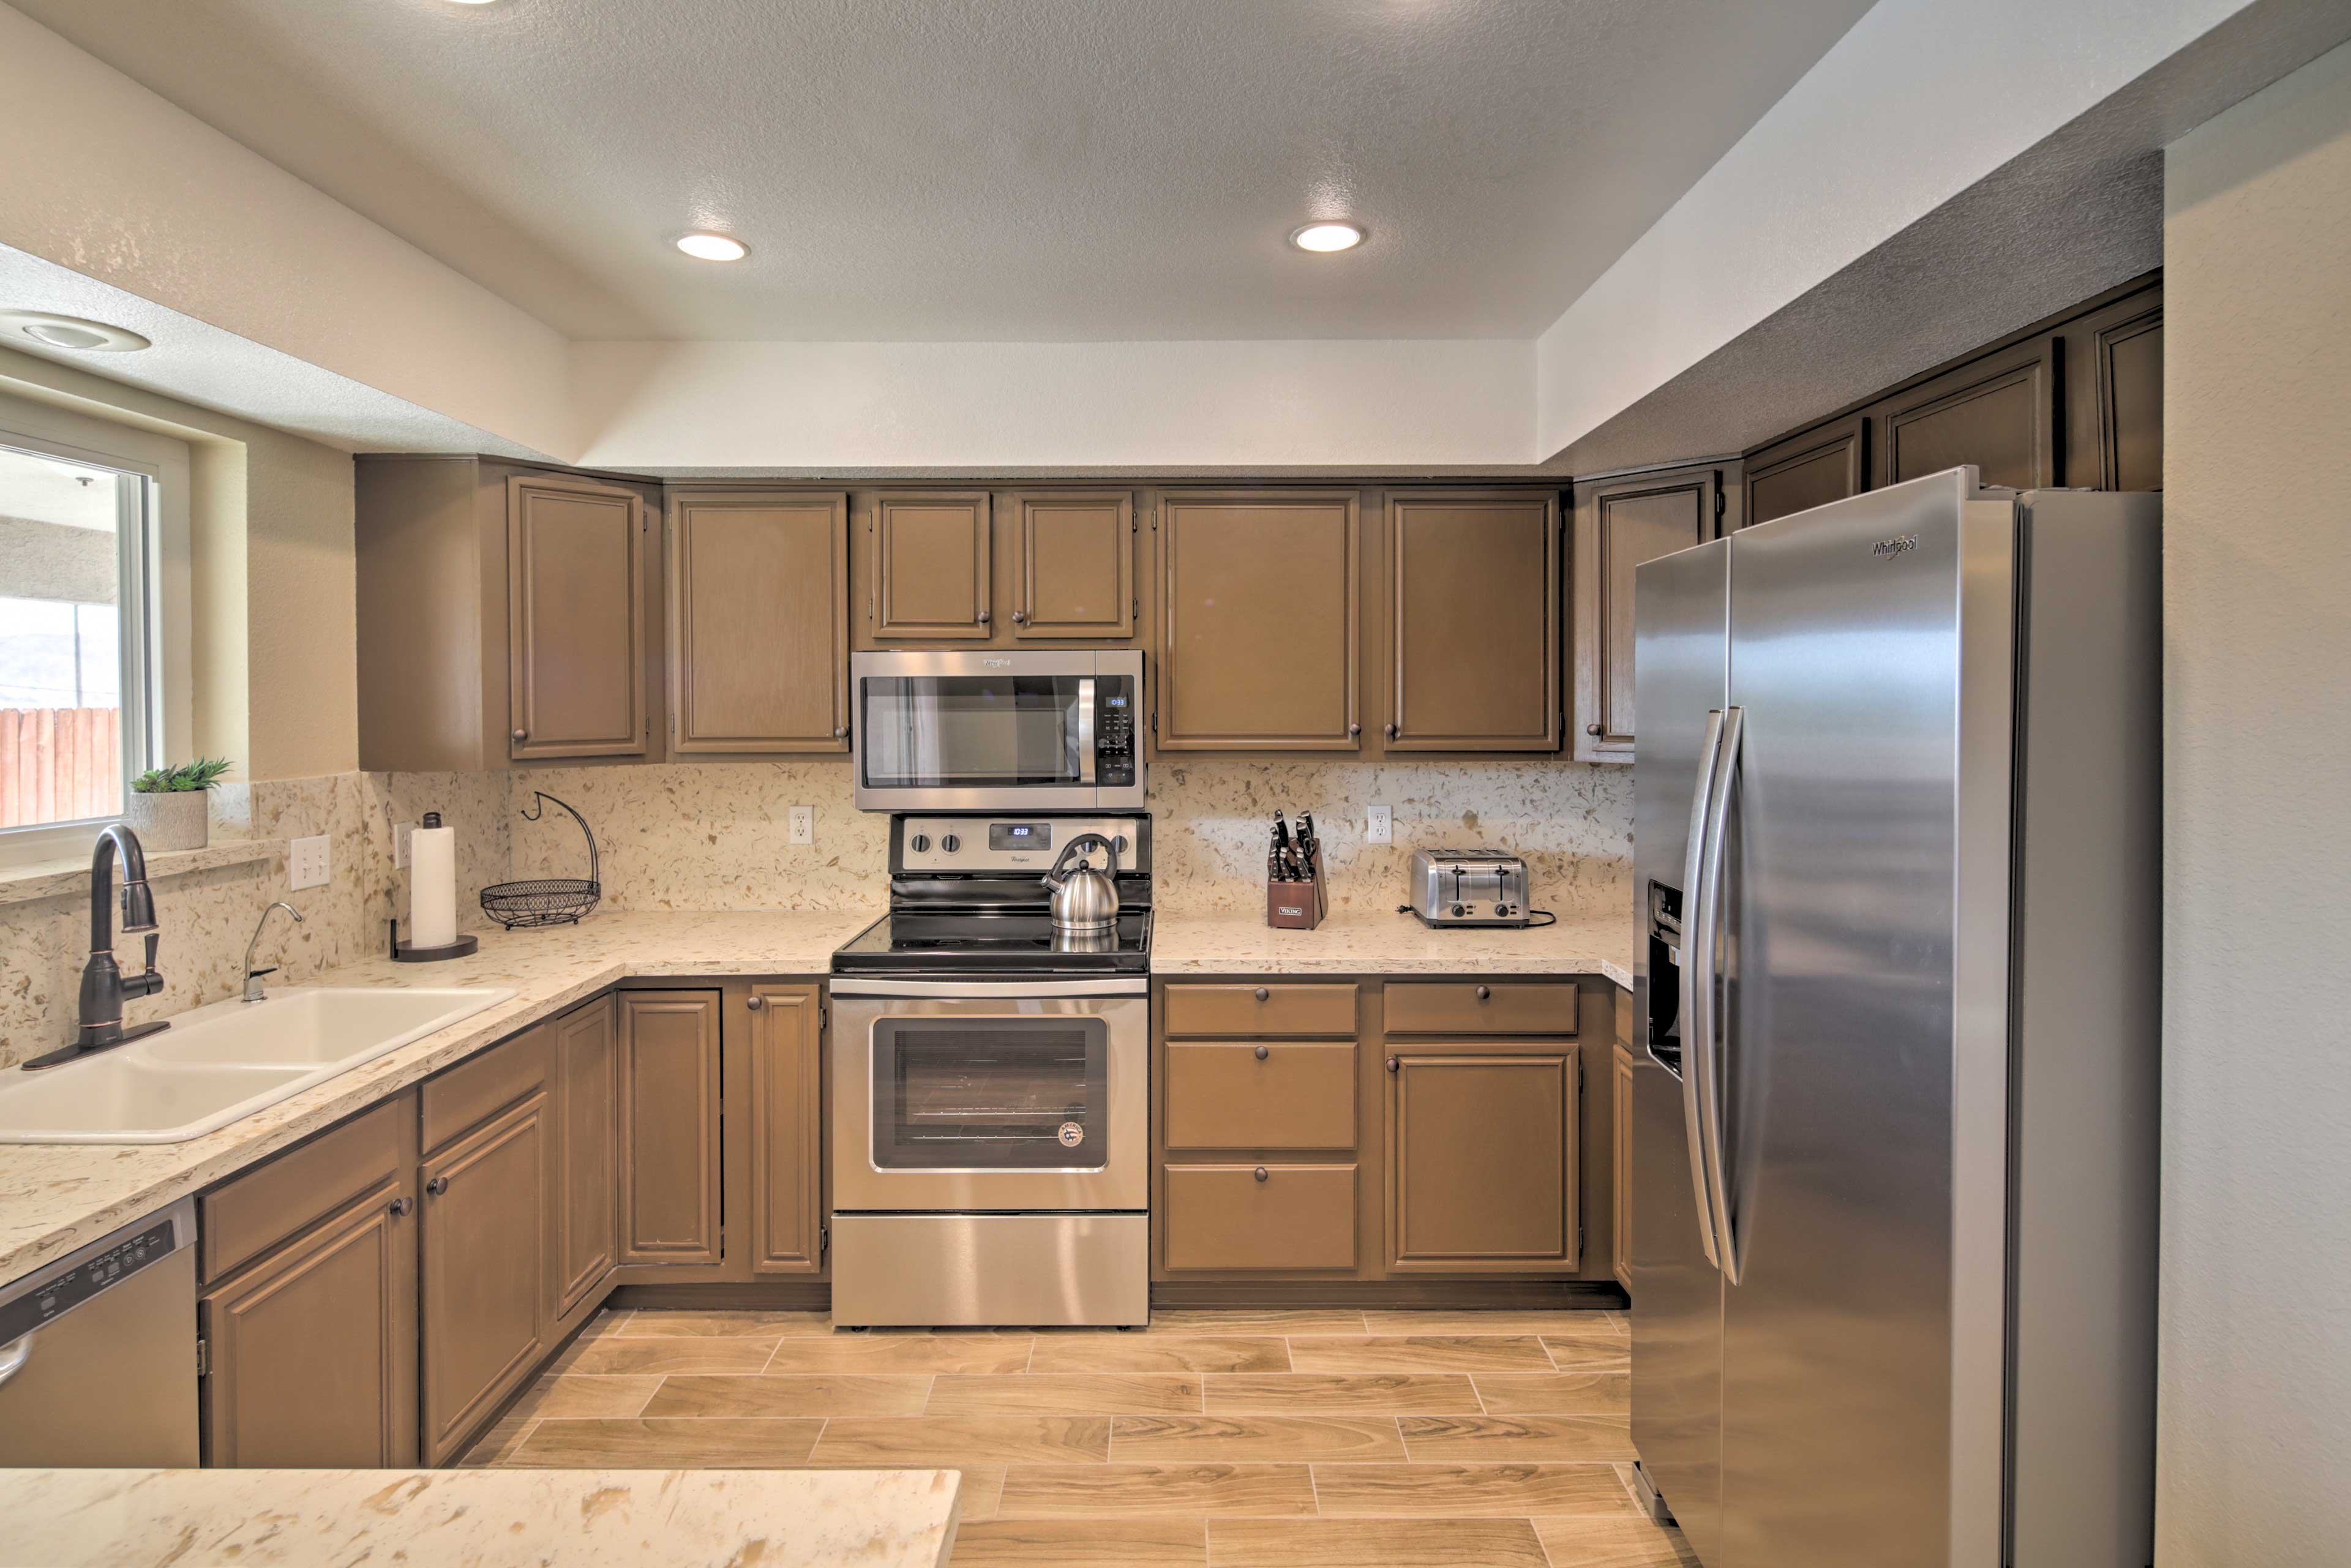 Stainless steel appliances furnish the wraparound counters.